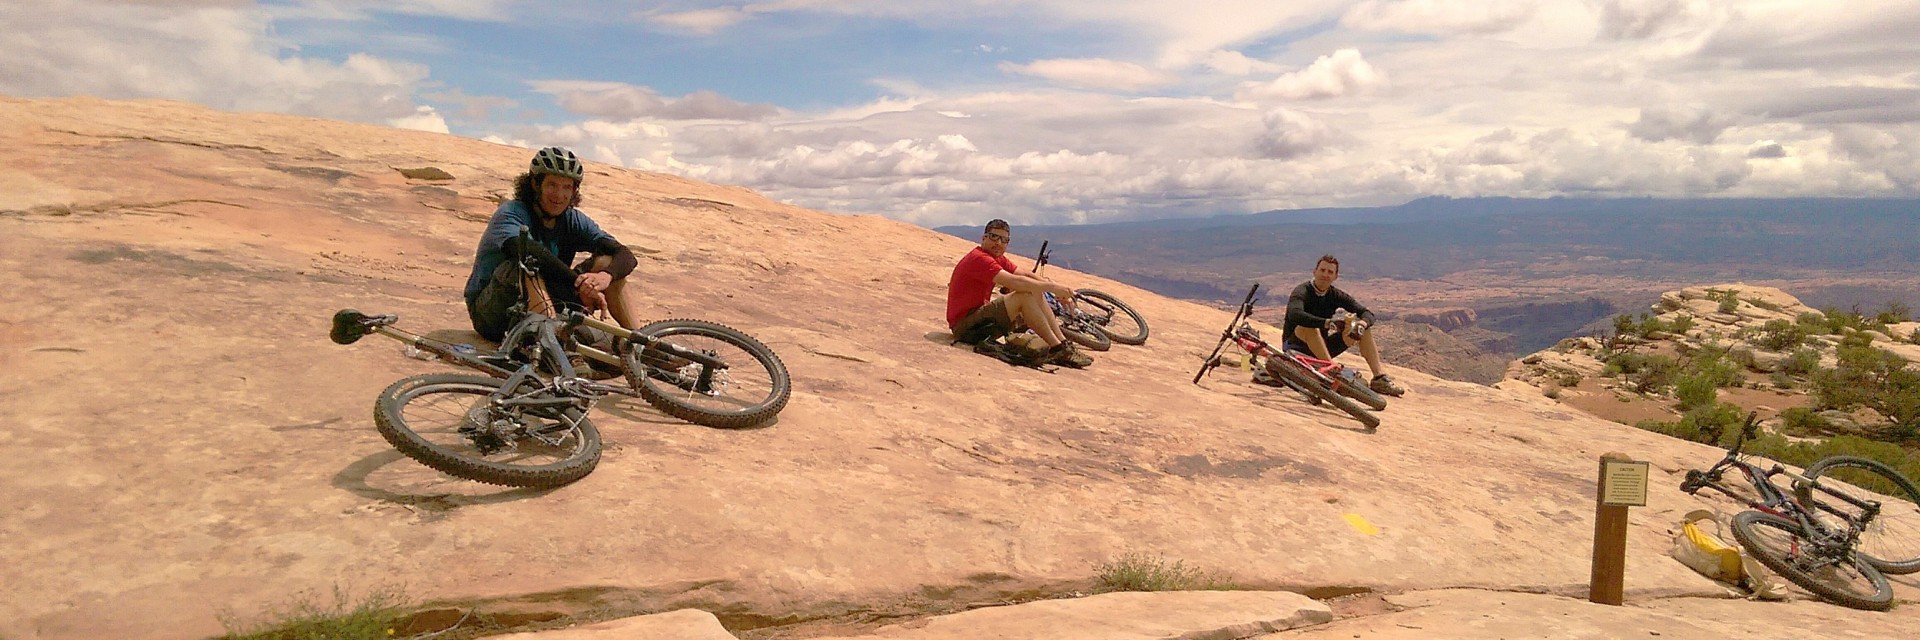 After the big climb up Goldbar Rim, Magnificent 7 Trail, Moab UT